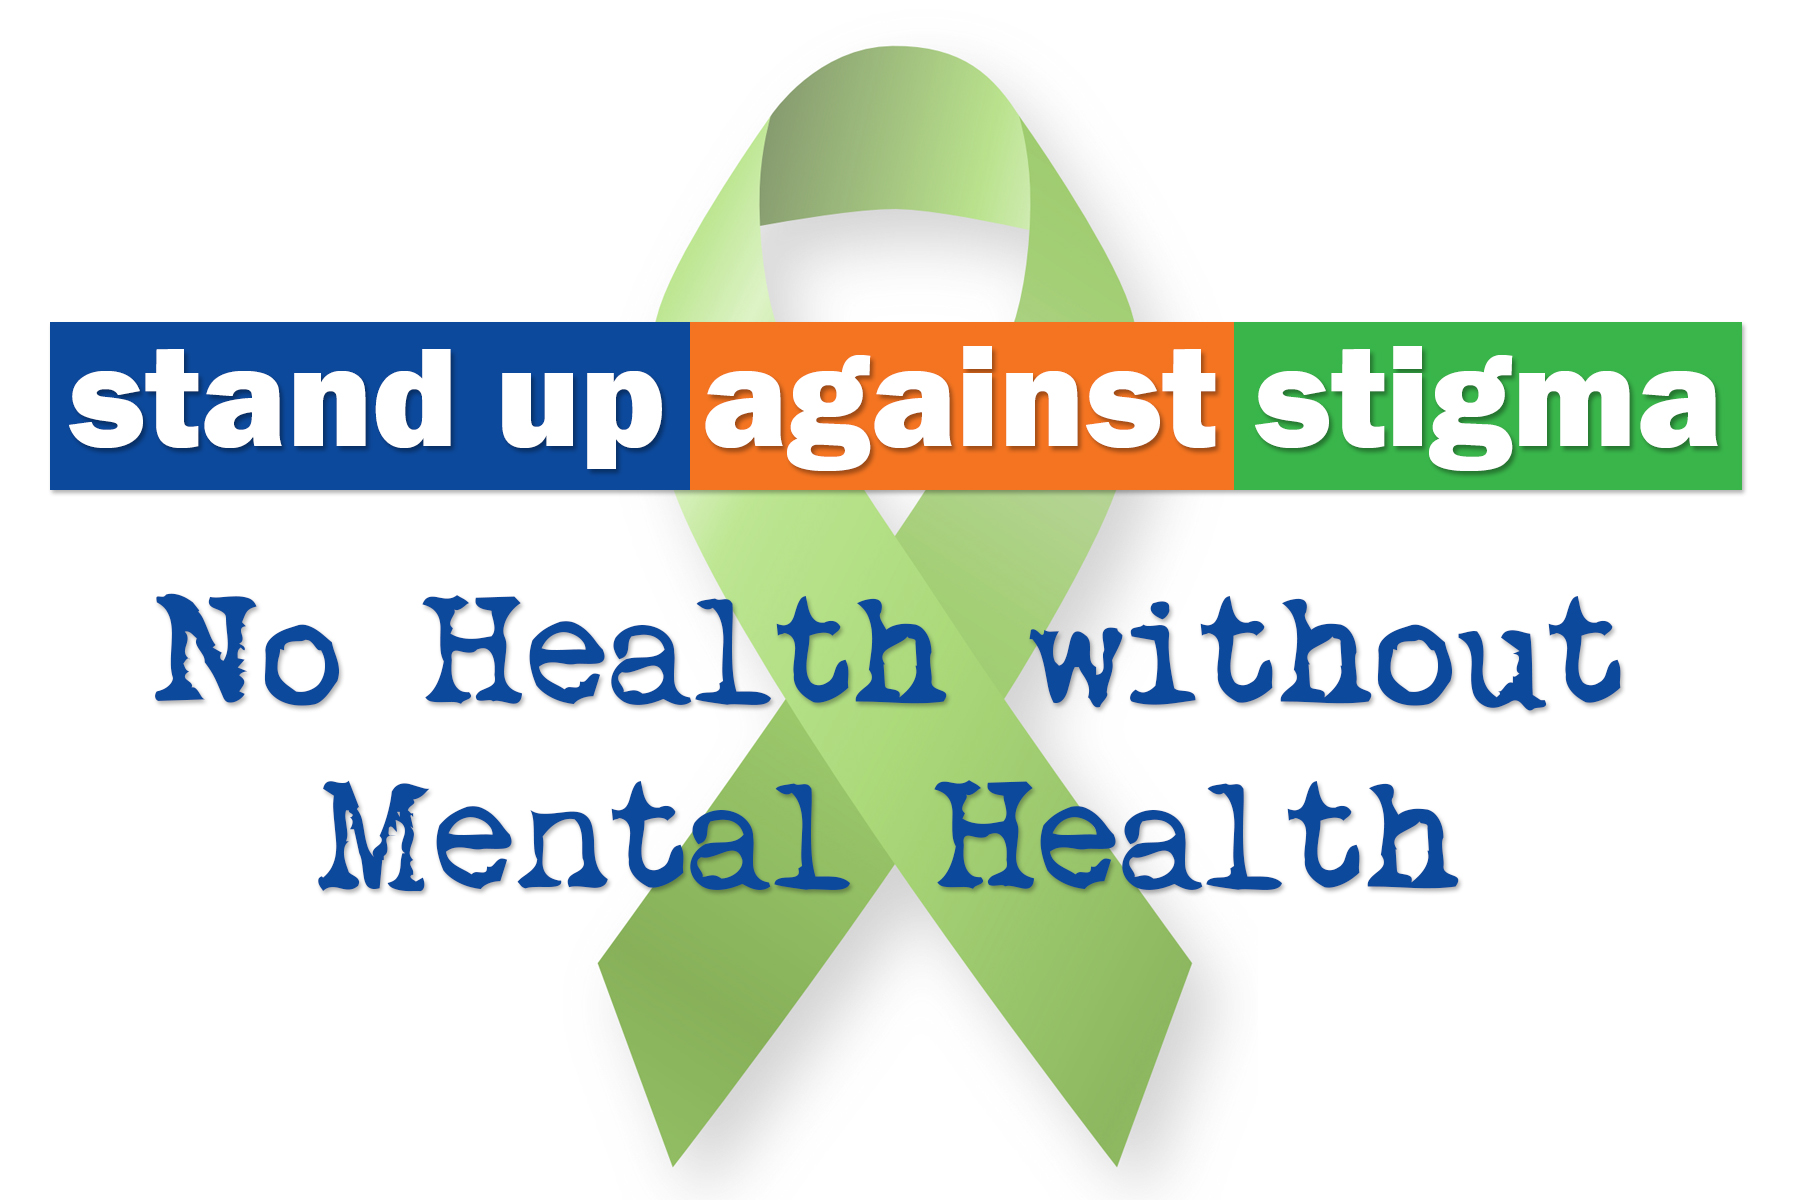 stand up against stigma